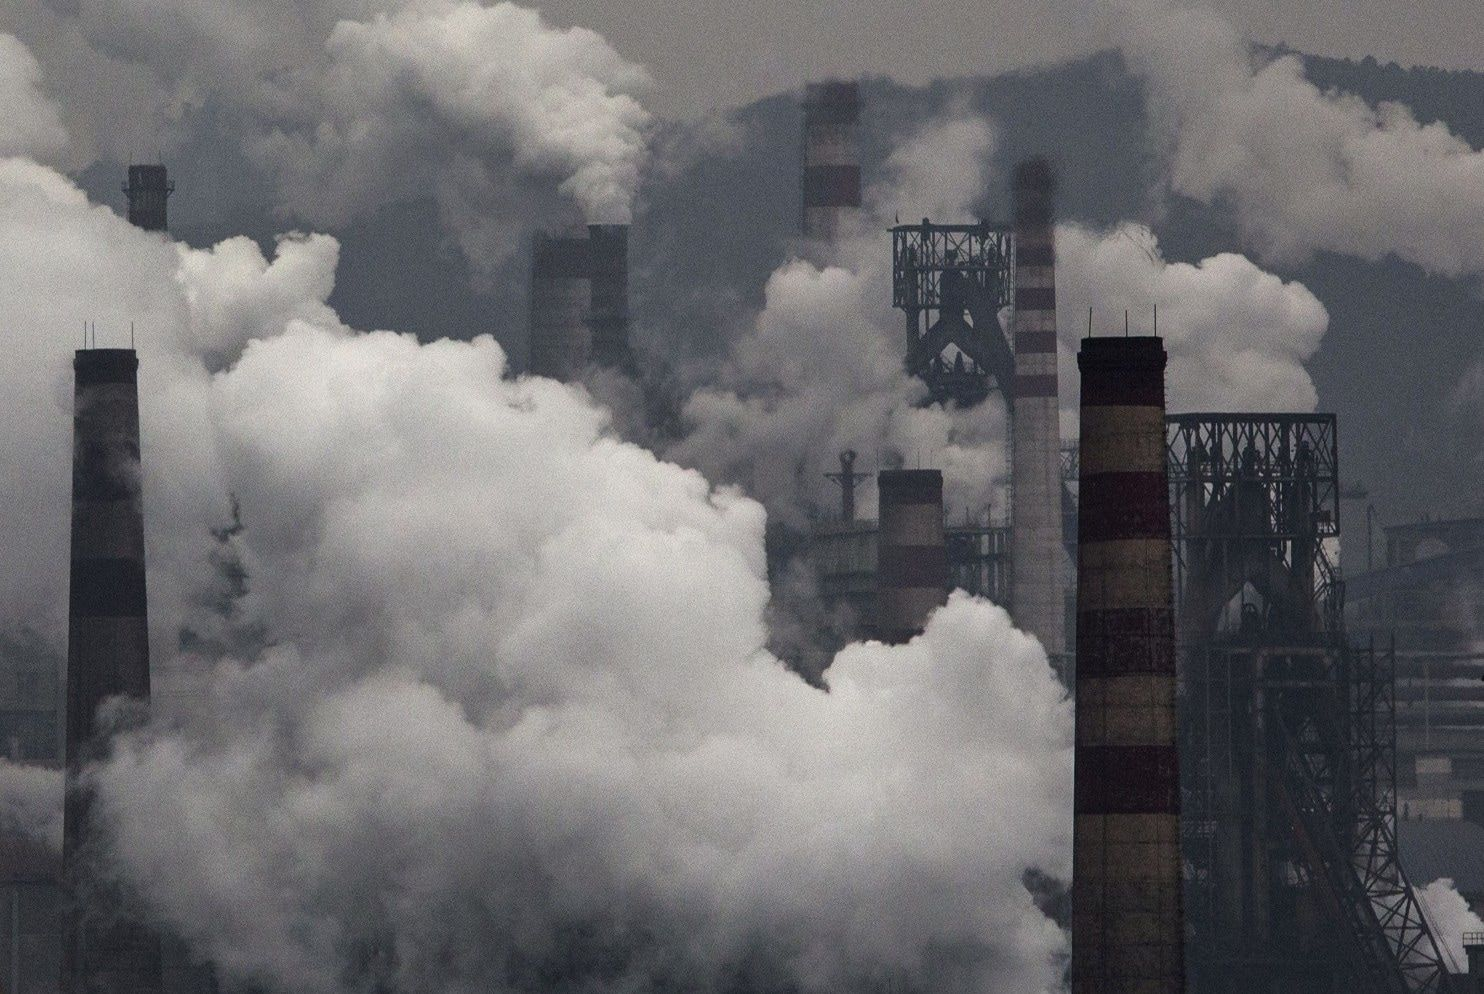 Air pollution affects preterm birthrates globally, study